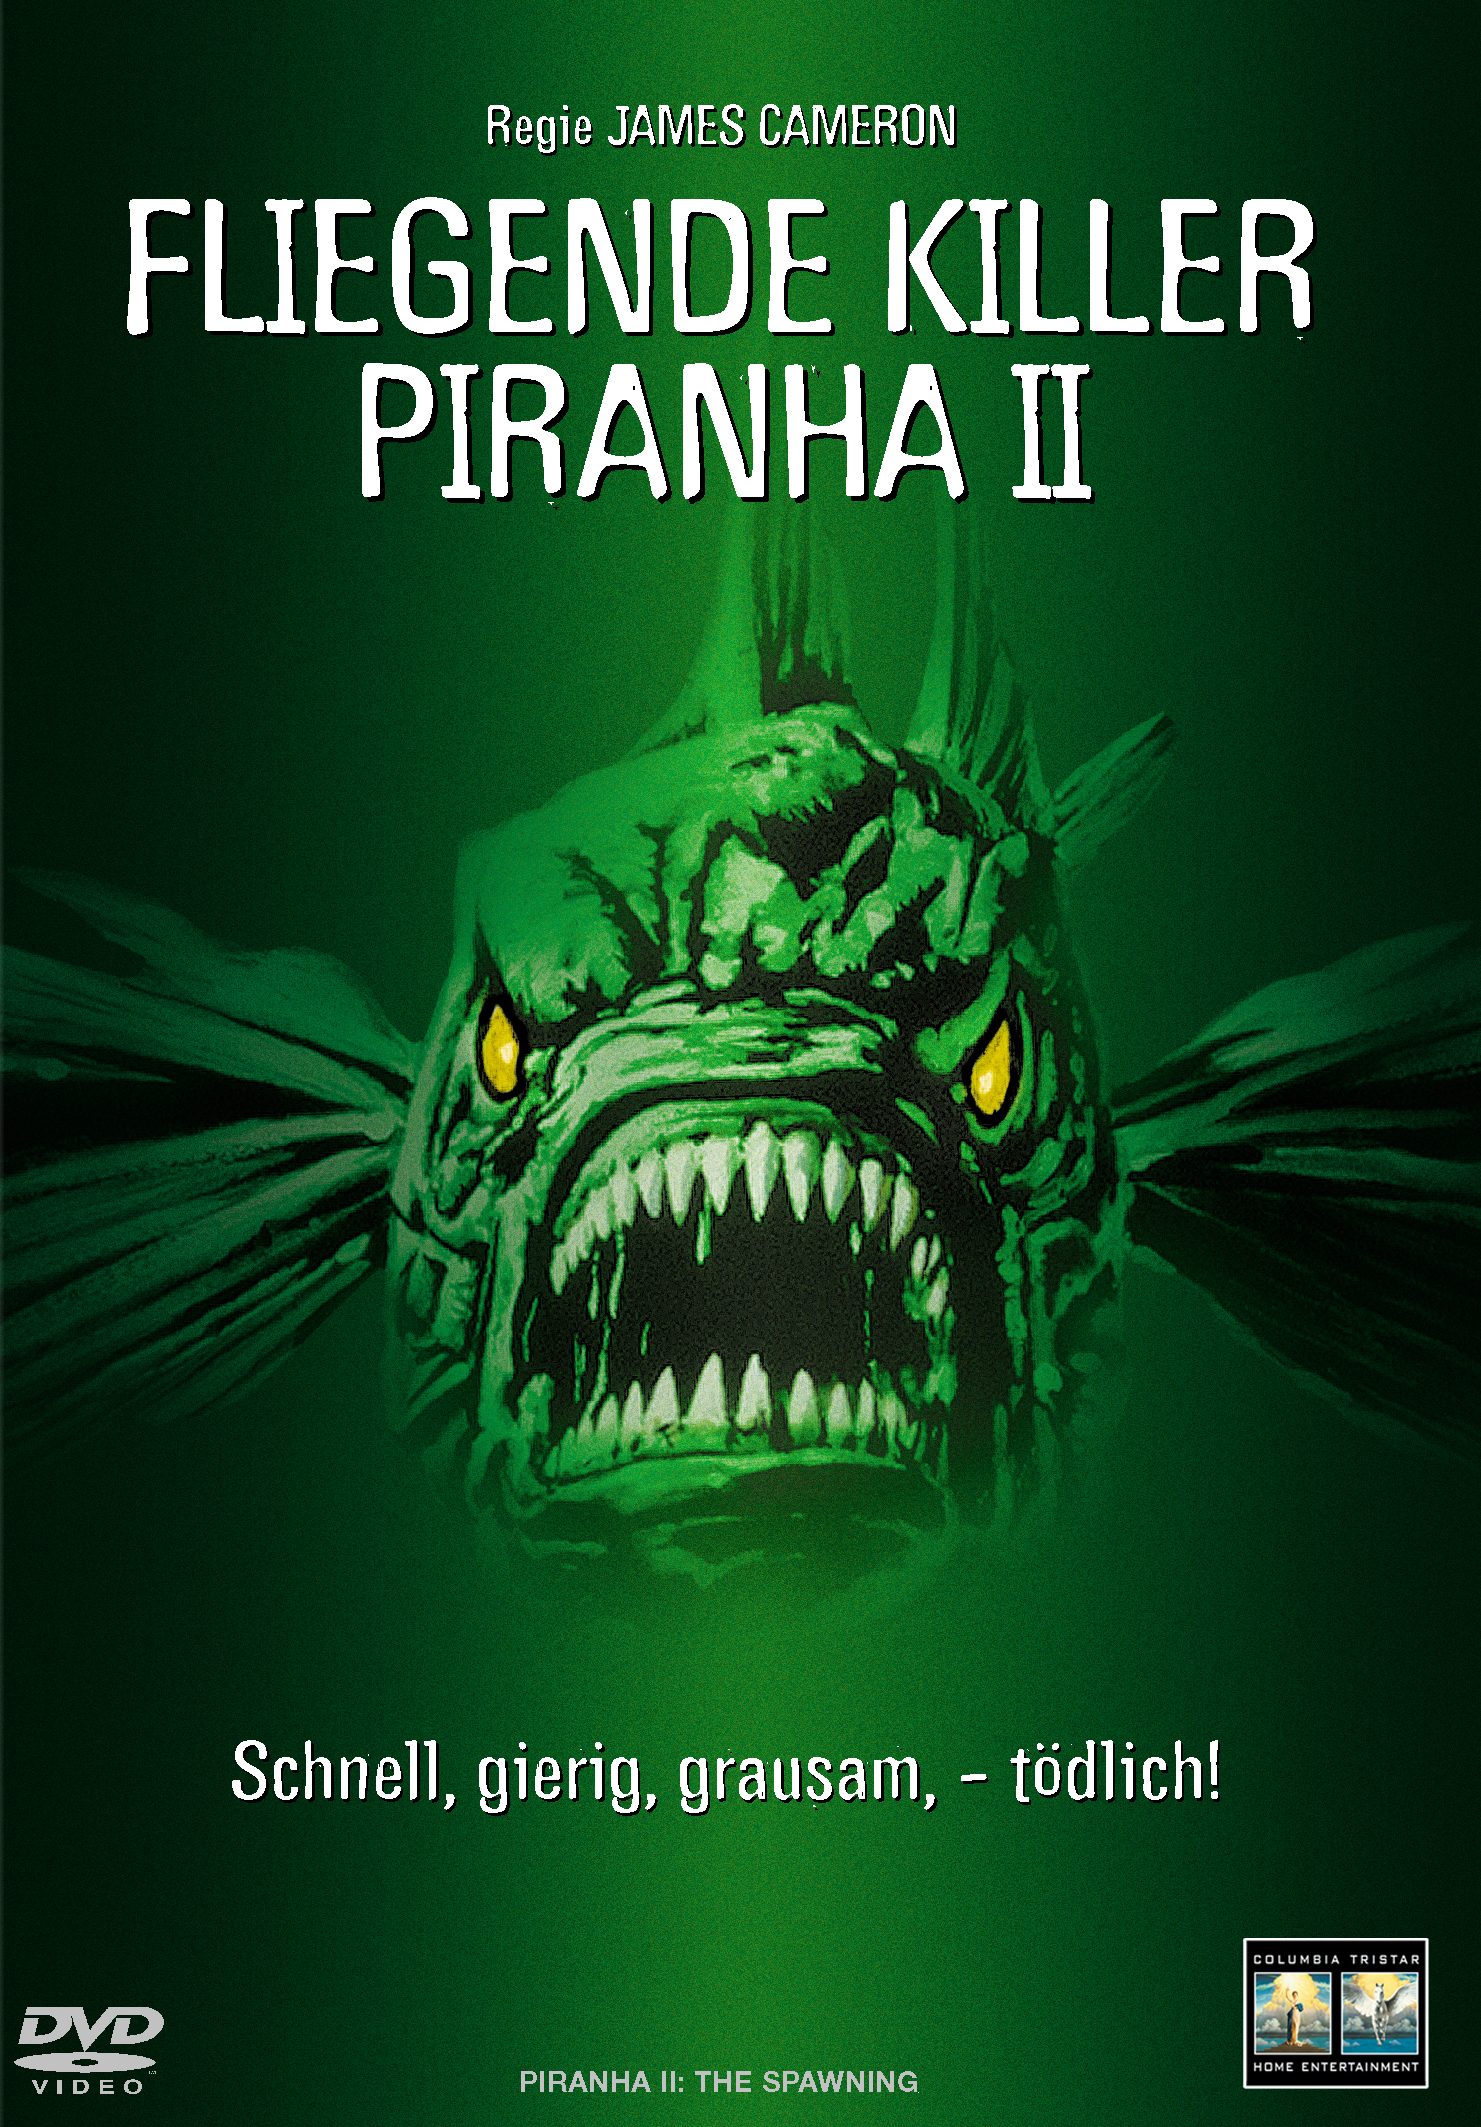 Piranha II - Fliegende Killer Poster